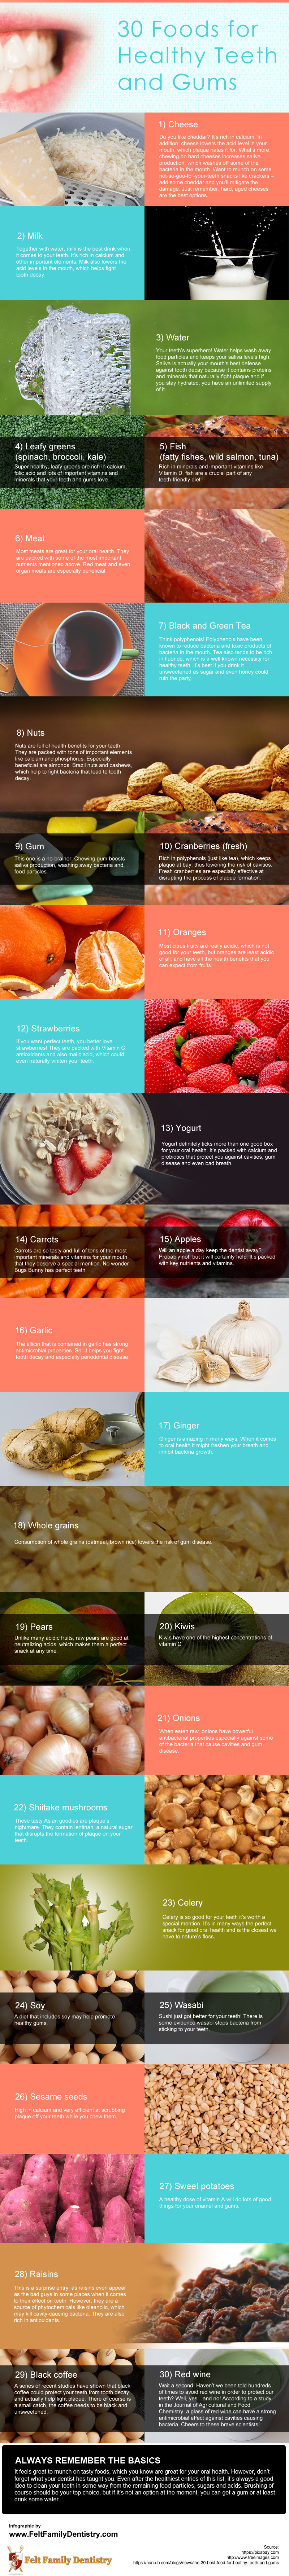 30 Foods for Healthy Teeth and Gums